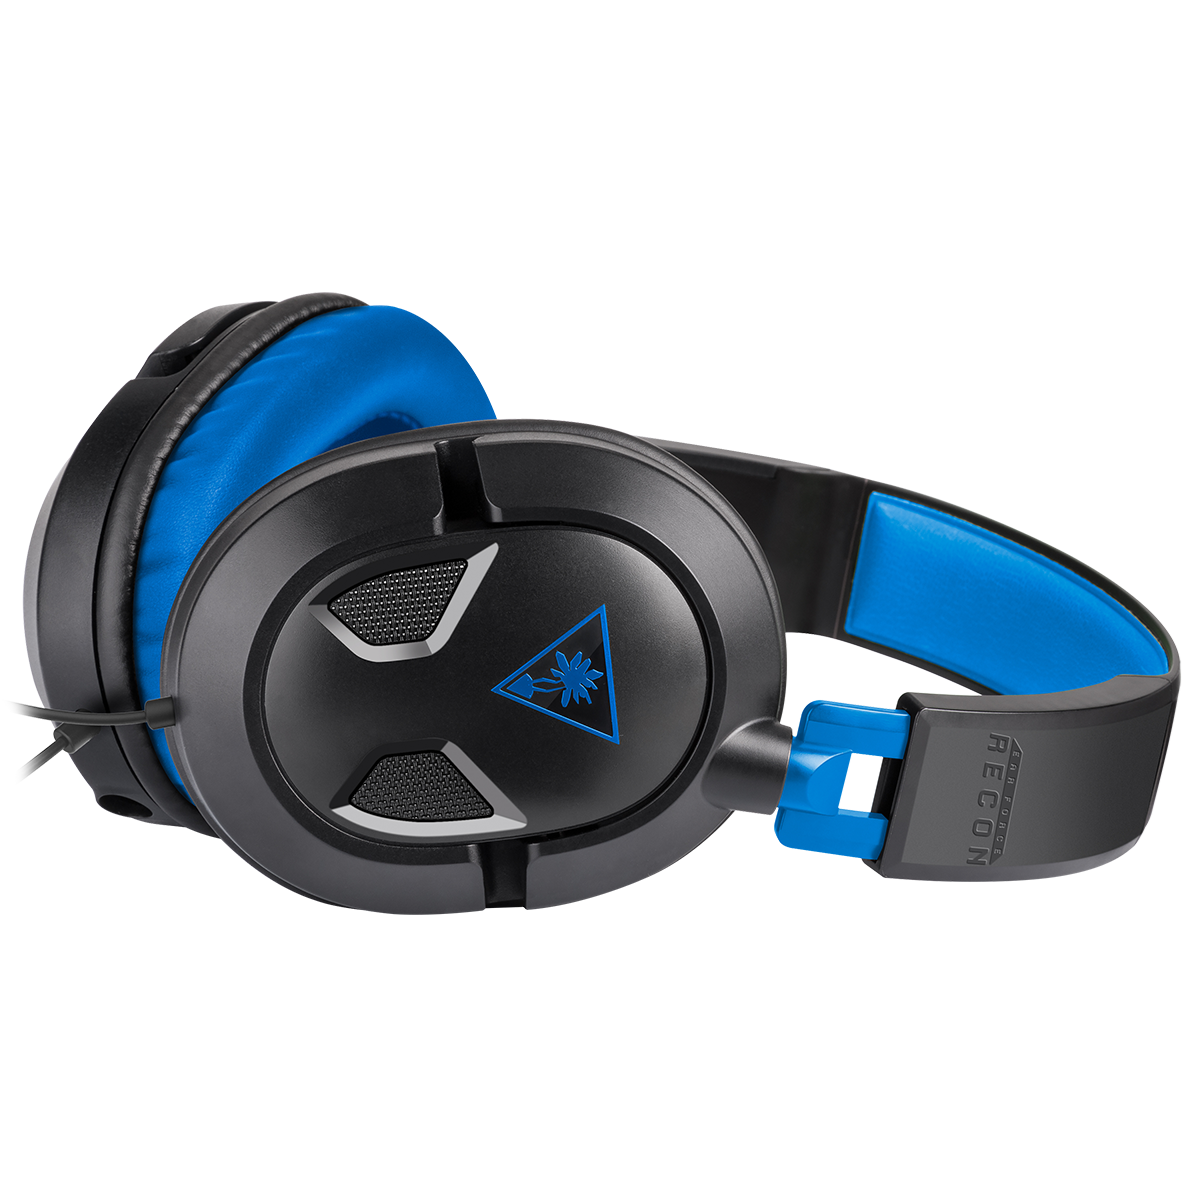 Recon 60p Playstation Headset Turtle Beach Us Atlas Ho Track Wiring